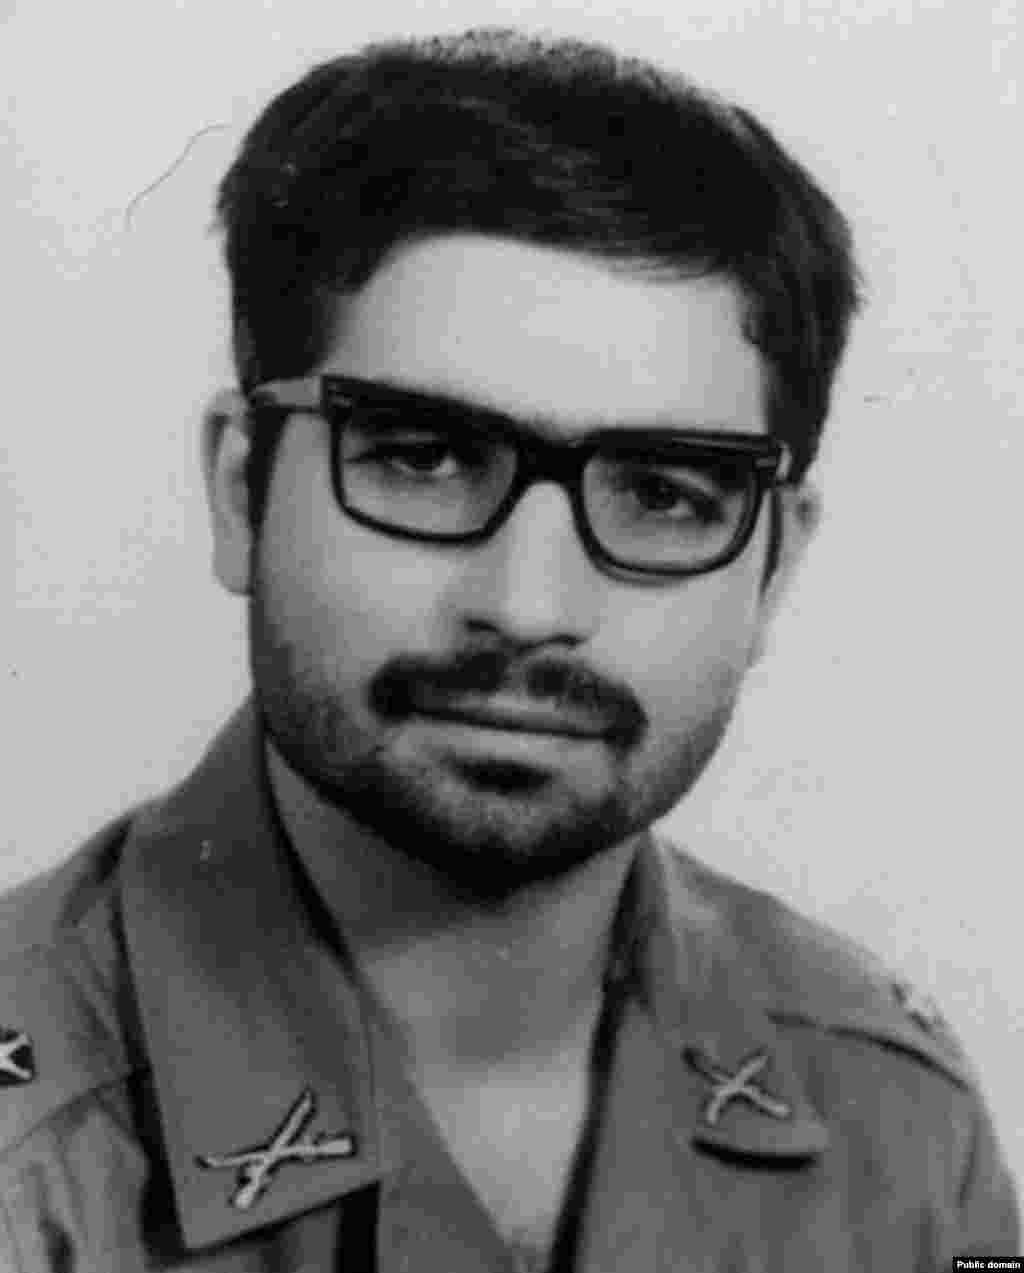 Hassan Rohani, now president of Iran, during his military service. Rohani later studied in Glasgow, Scotland, where he wrote a doctoral thesis on The Flexibility Of Shari'a (Islamic Law) With Reference To The Iranian Experience. A student group later claimed passages had been lifted.